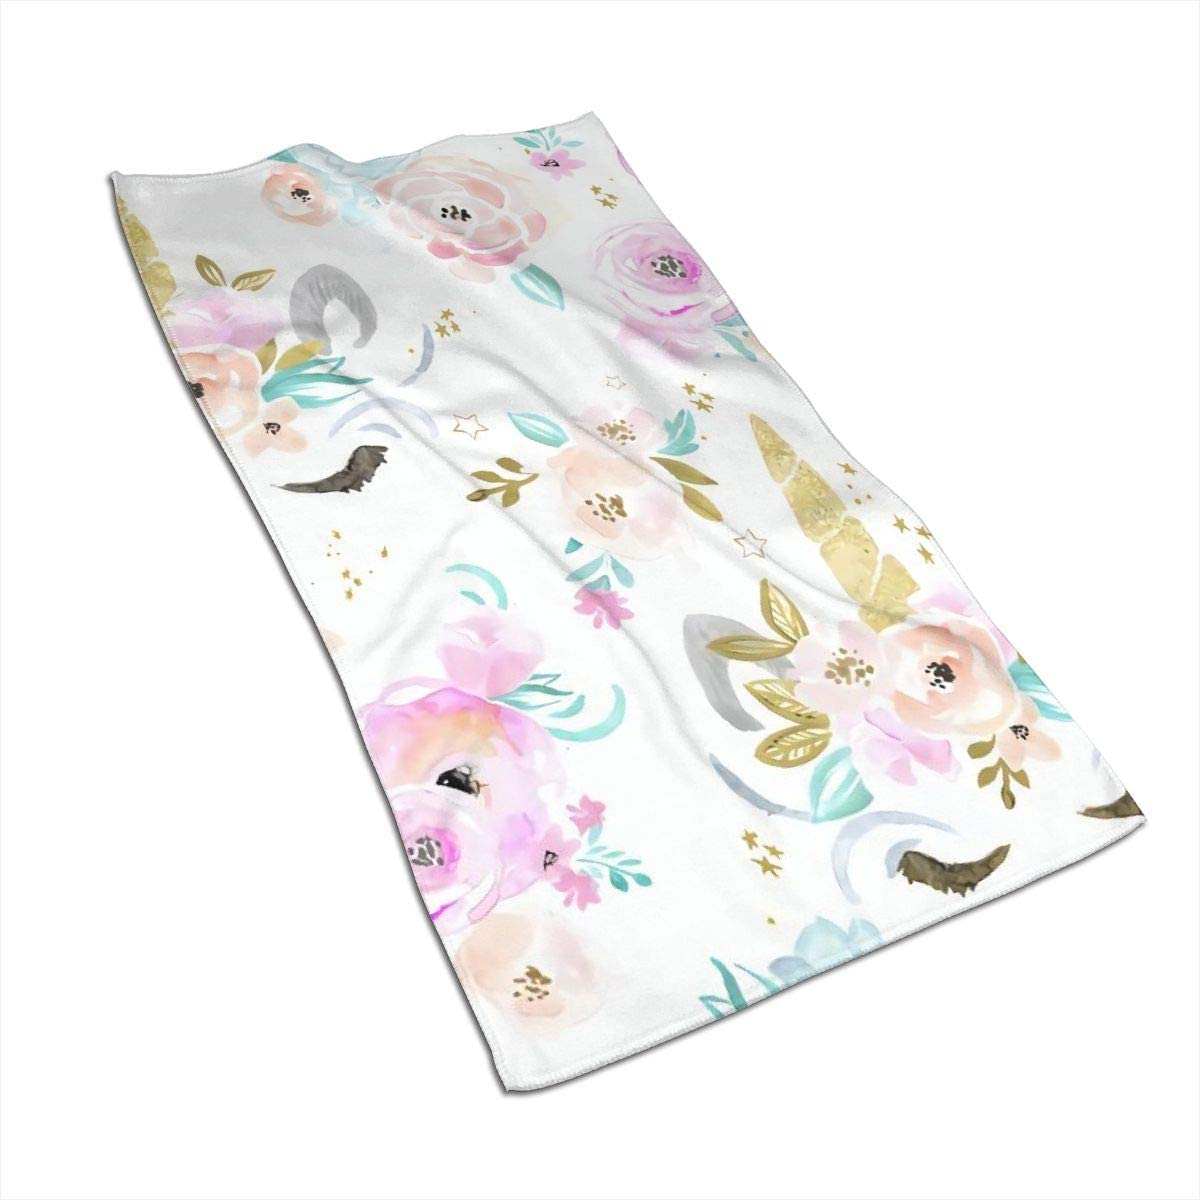 not Unicorn Floral Towel 27.5 X15.7 in for Gym Travel Pool Home Use